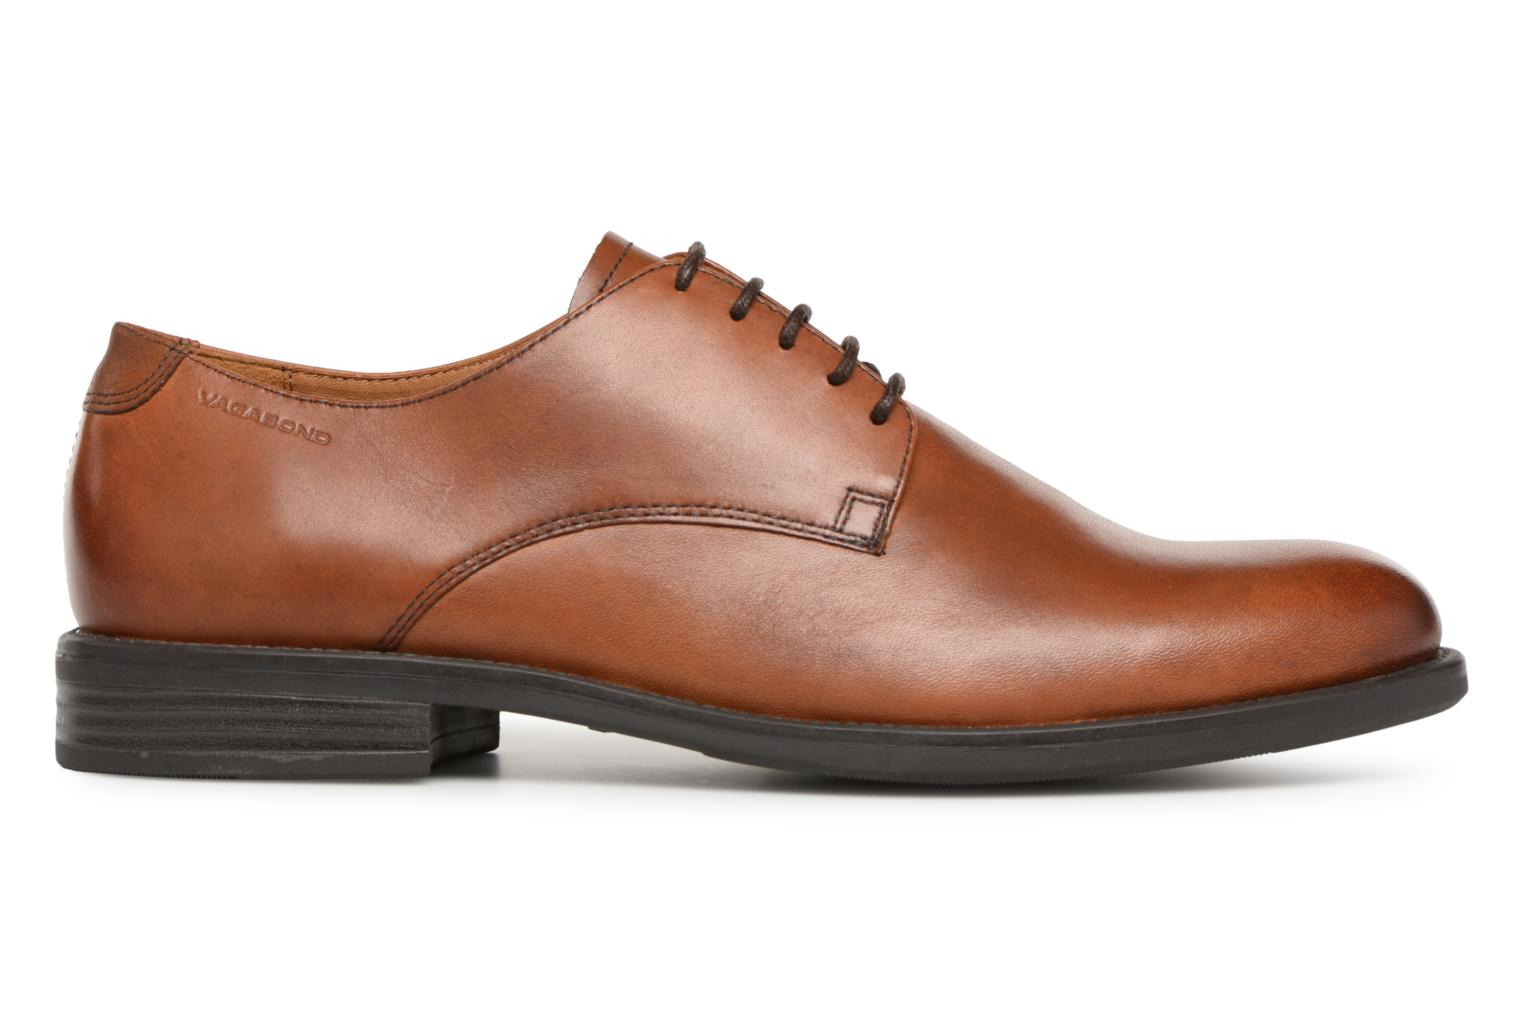 Vagabond Shoemakers Salvatore 4464-101 Novità